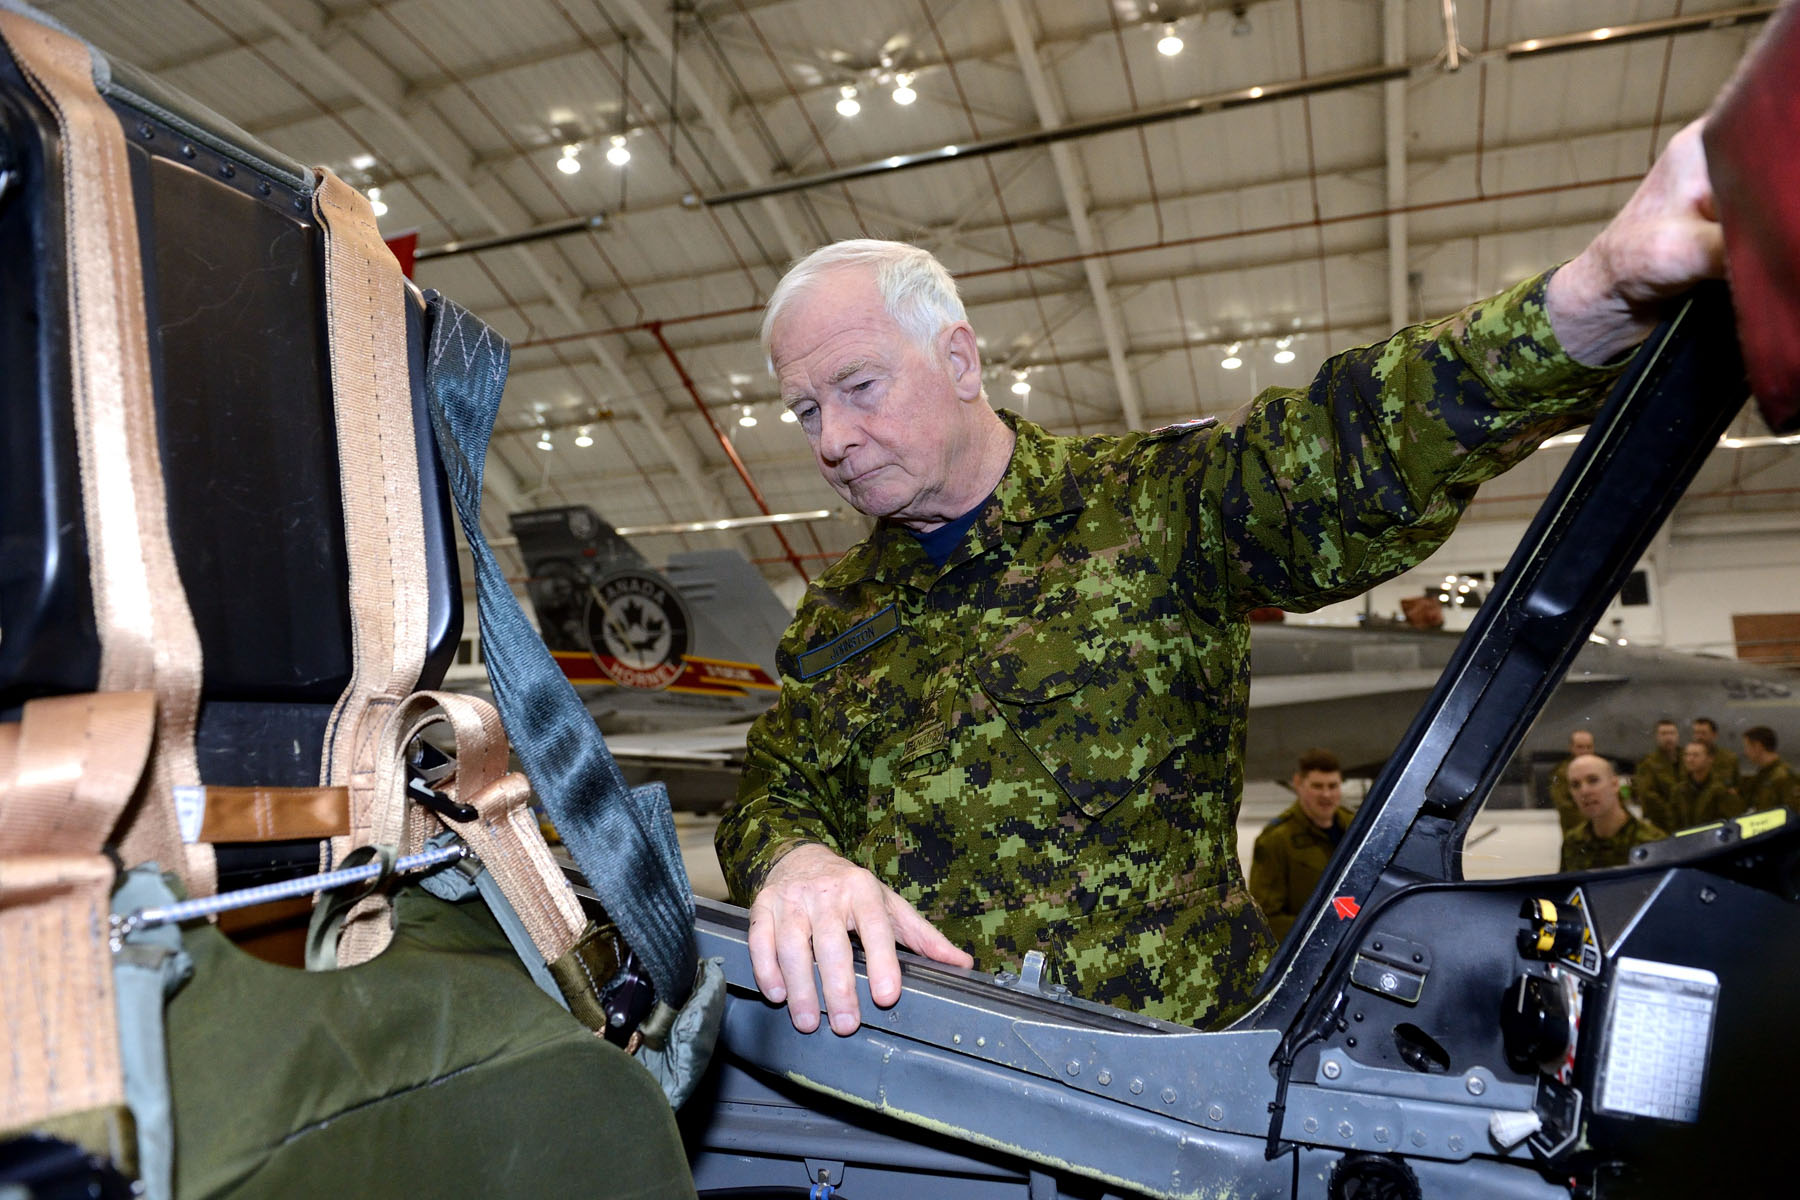 His Excellency looked into the cockpit of a CT-155 Hawk, a trainer aircraft.